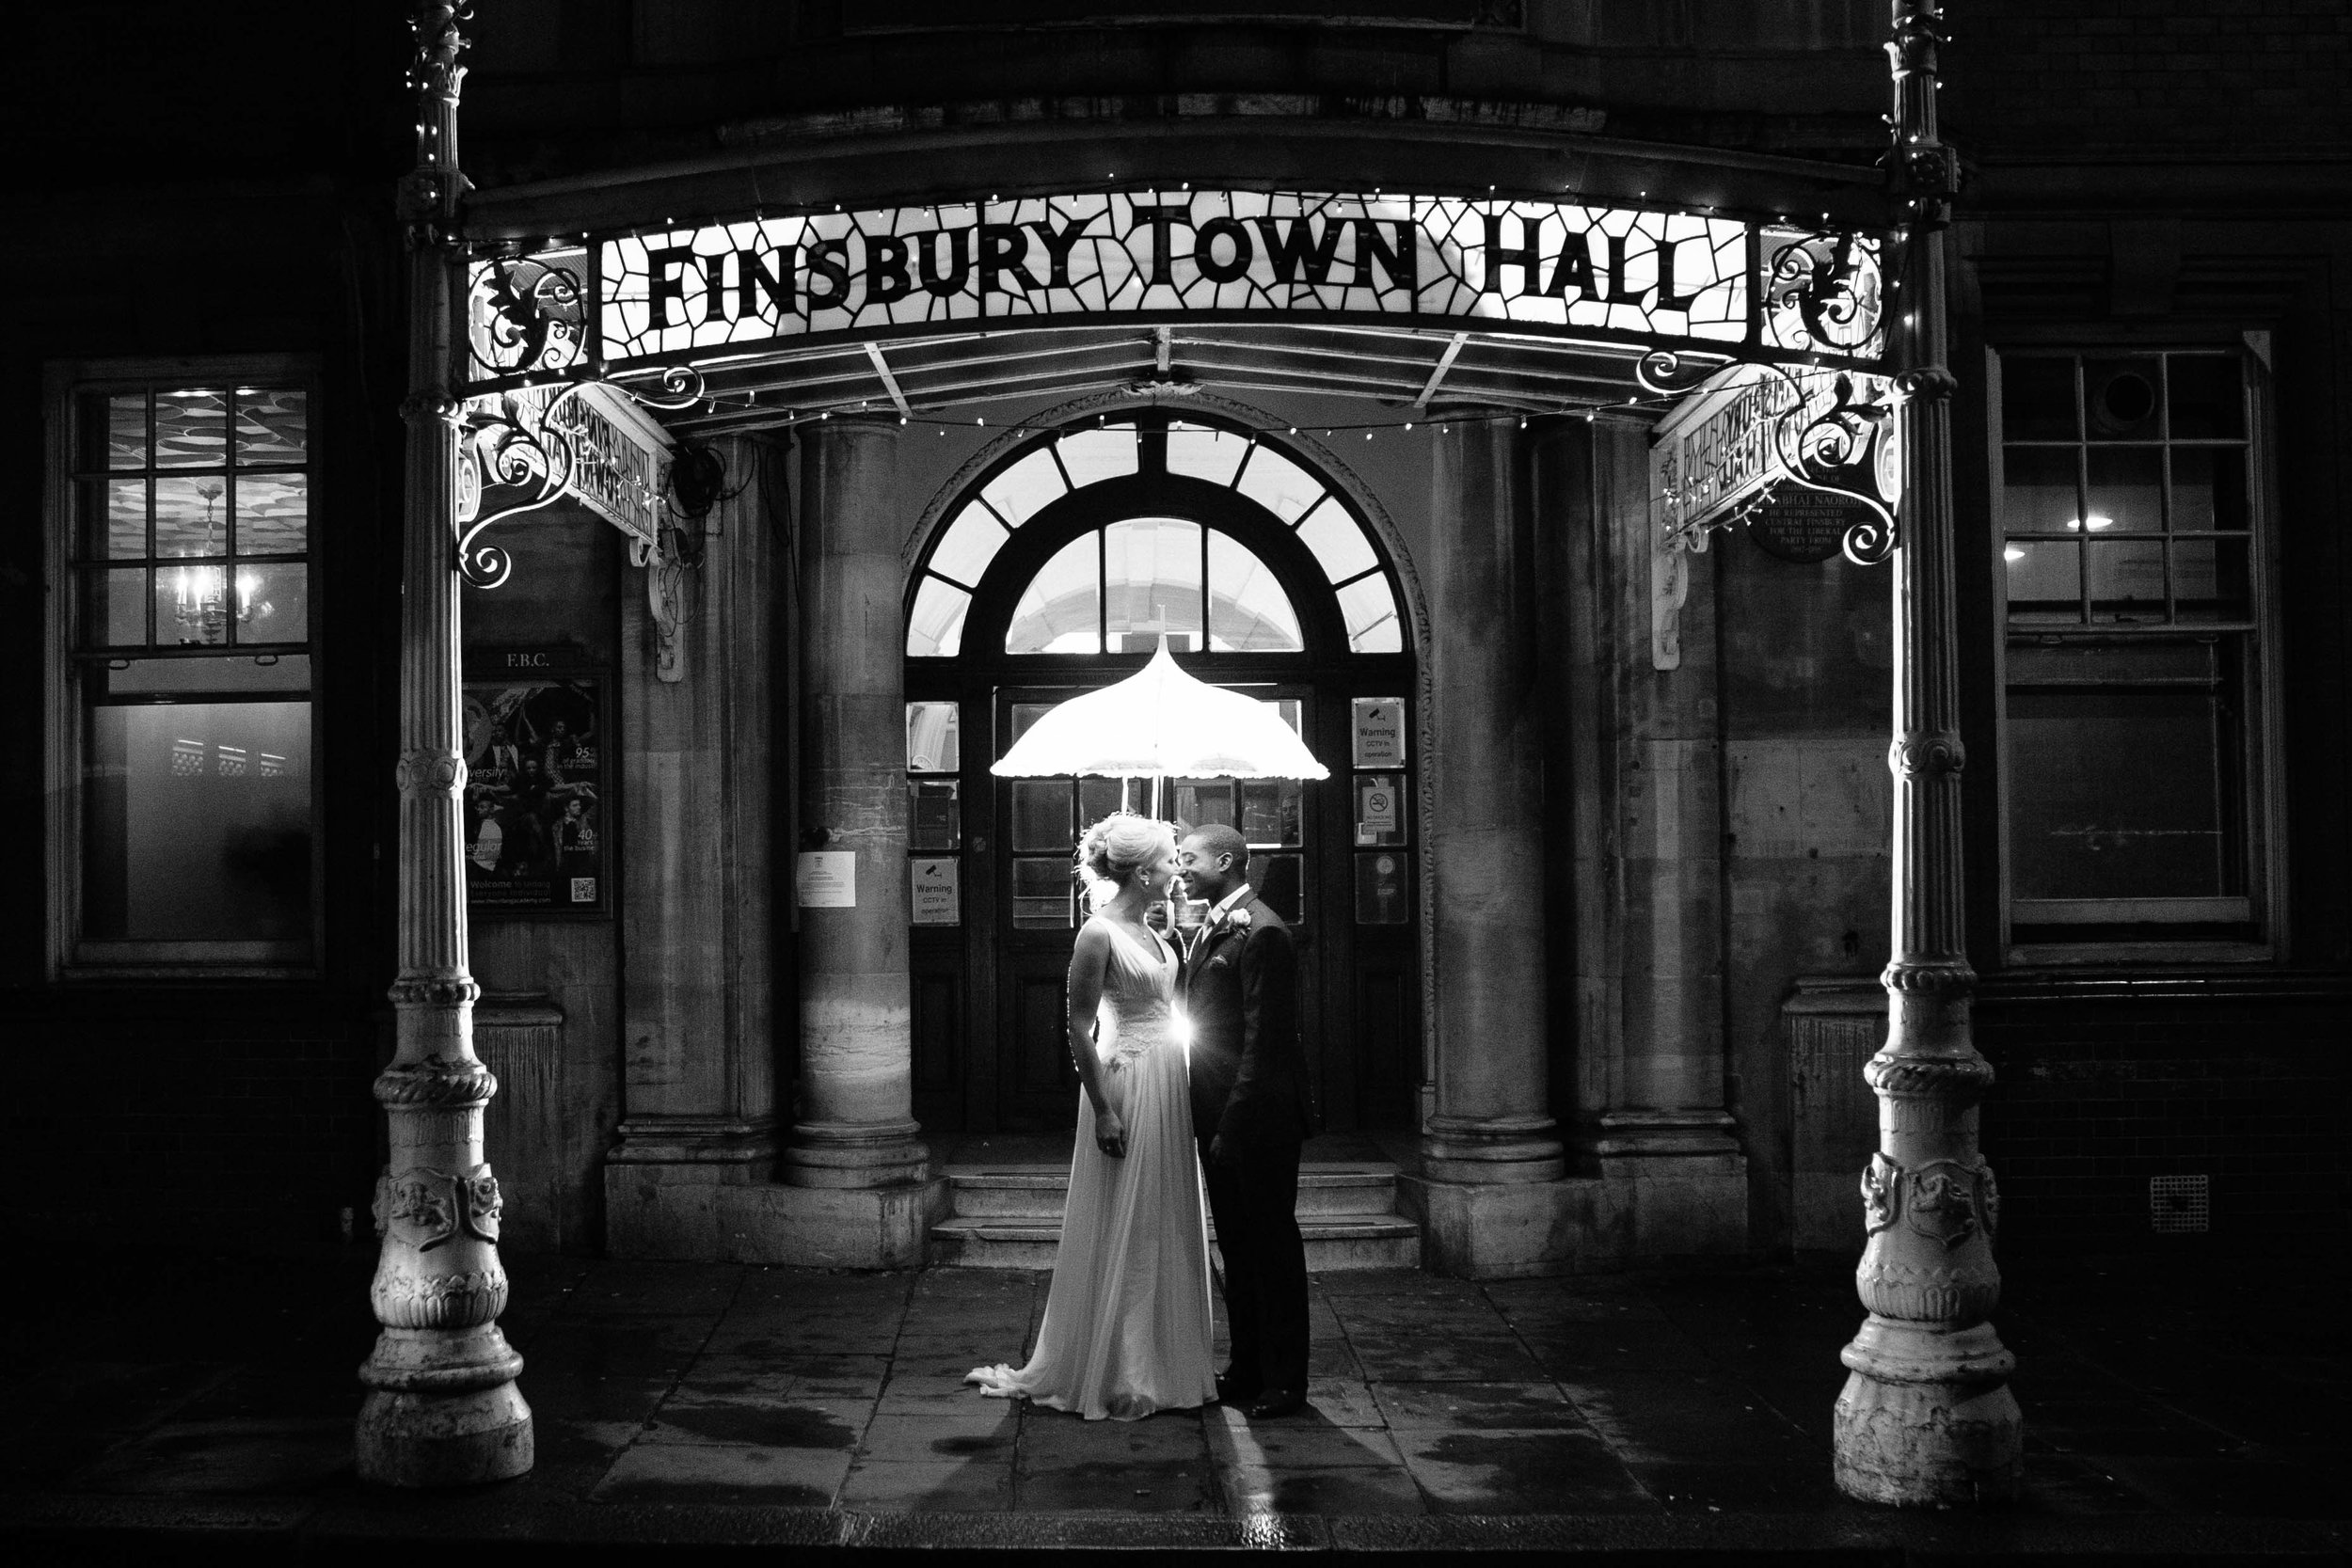 Weddings, Finsbury Town Hall